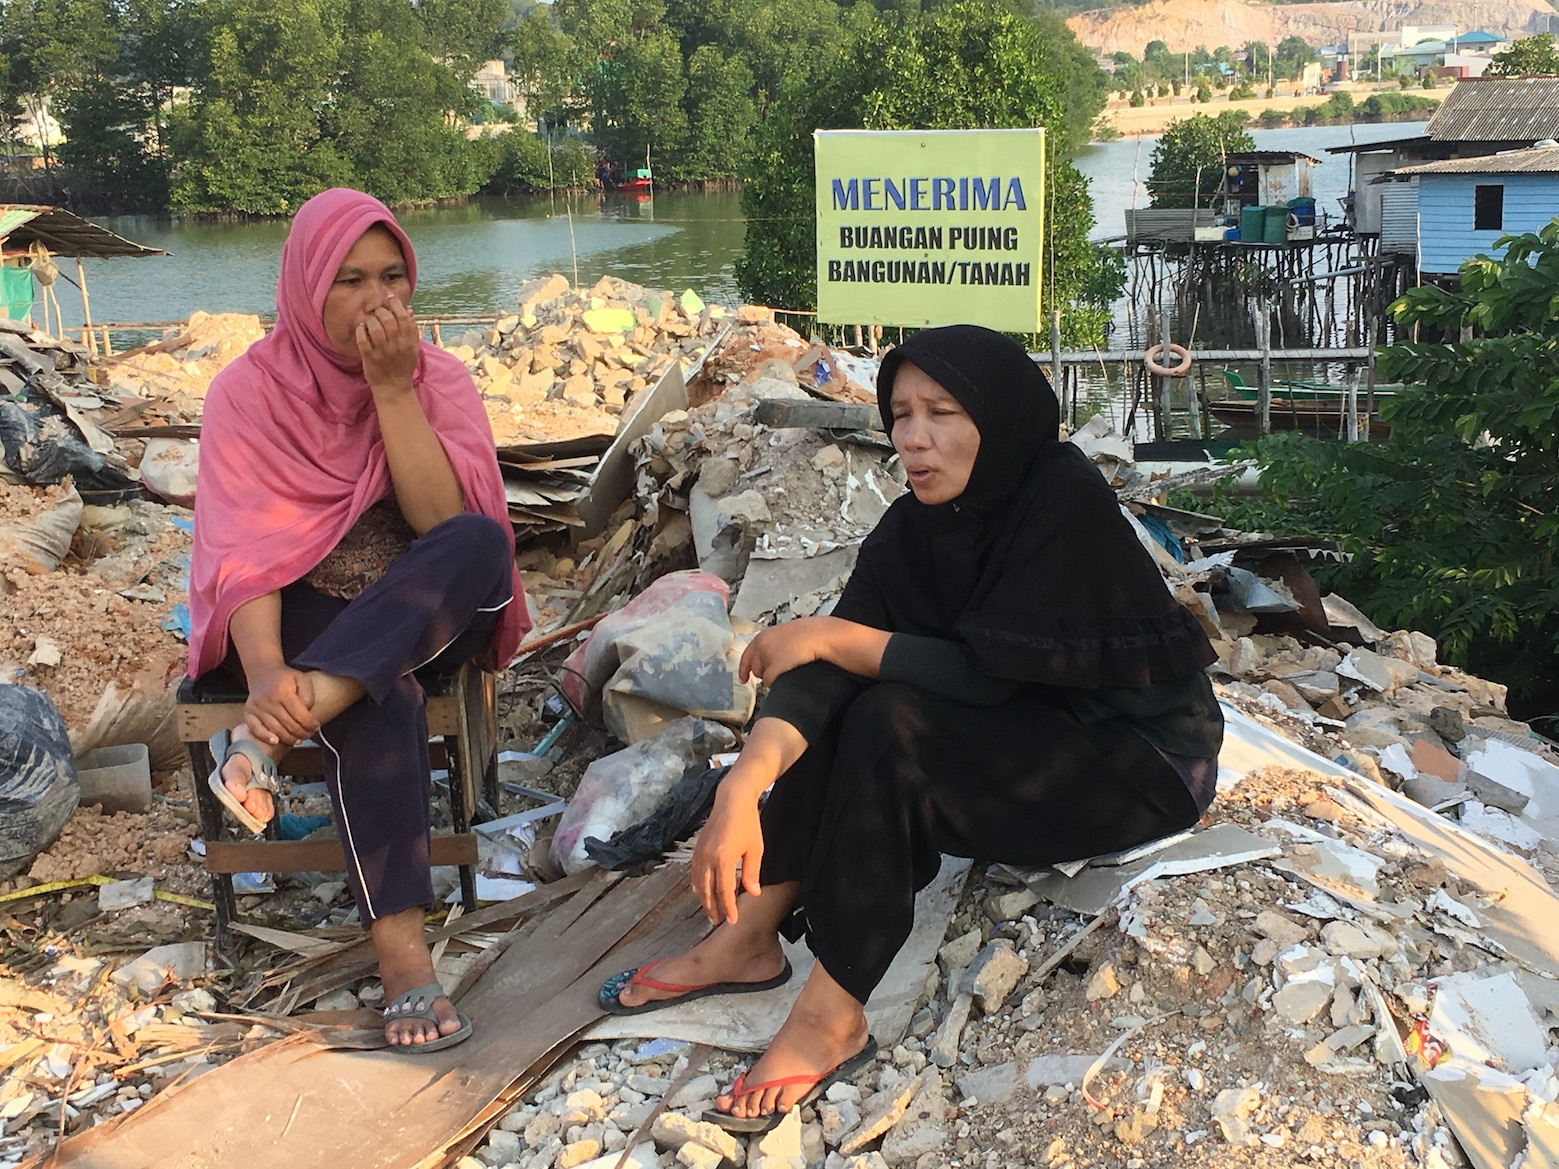 Batam Island – Indonesia's pathetic attempt to create a